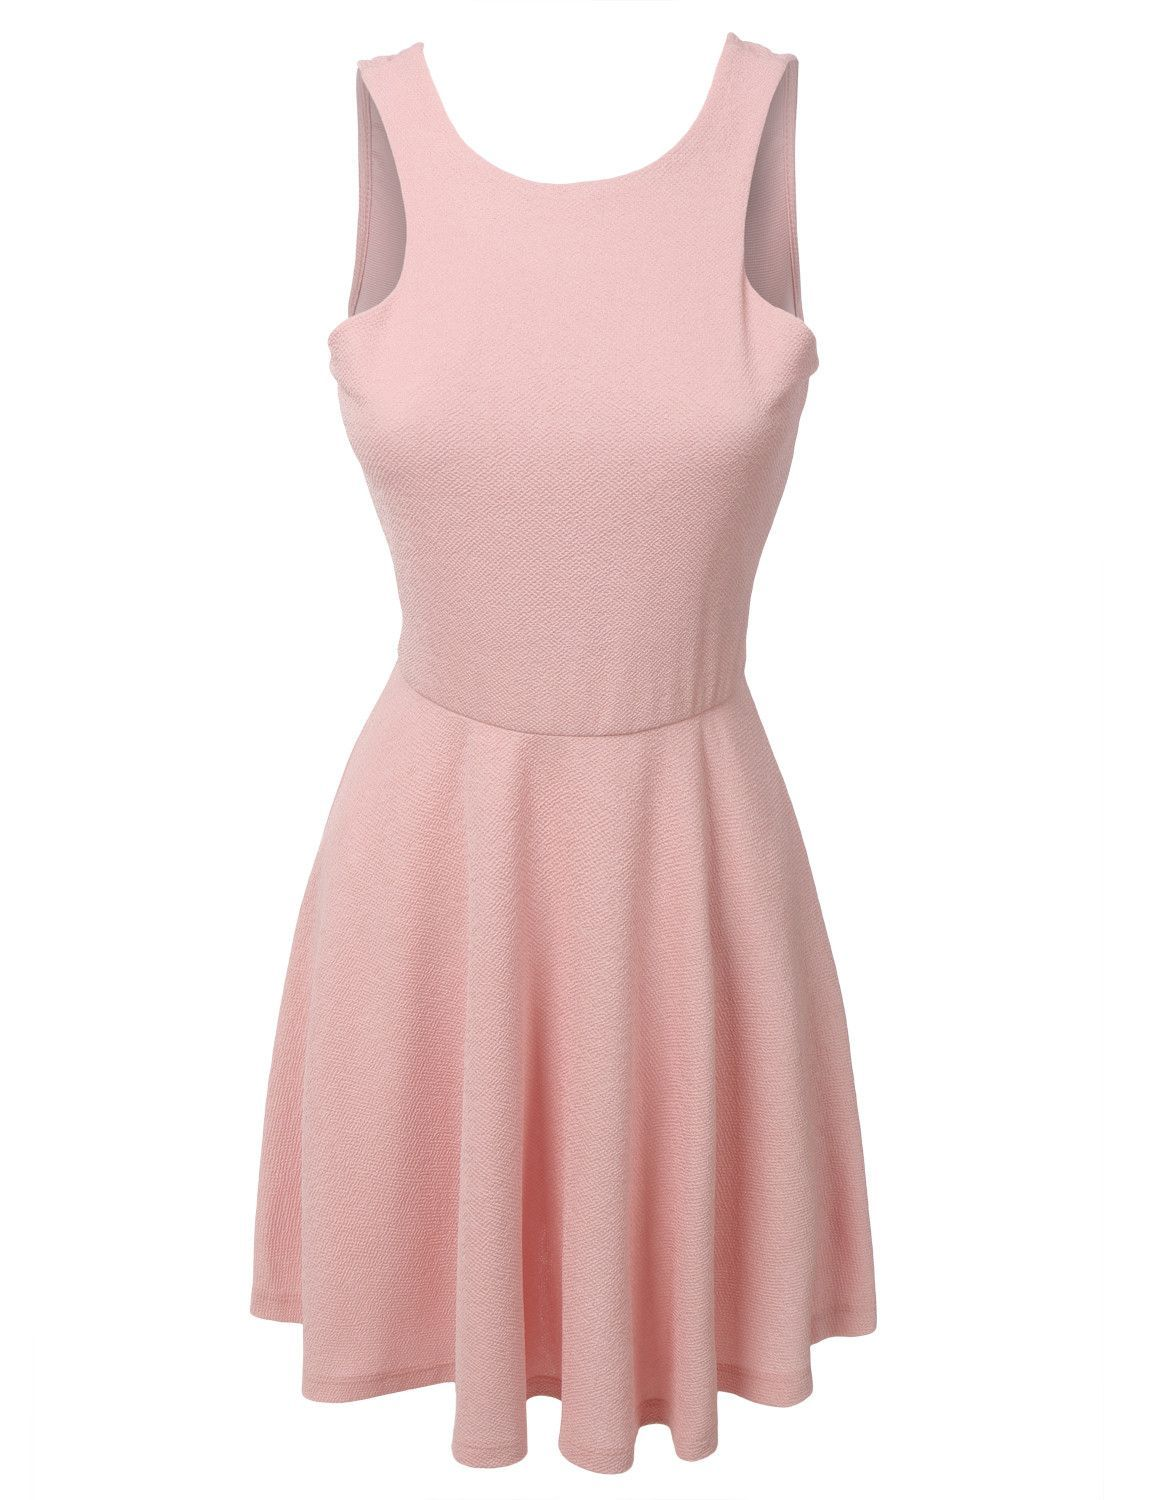 LE3NO Womens Sleeveless Skater Dress with Back Plunge Line (CLEARANCE)